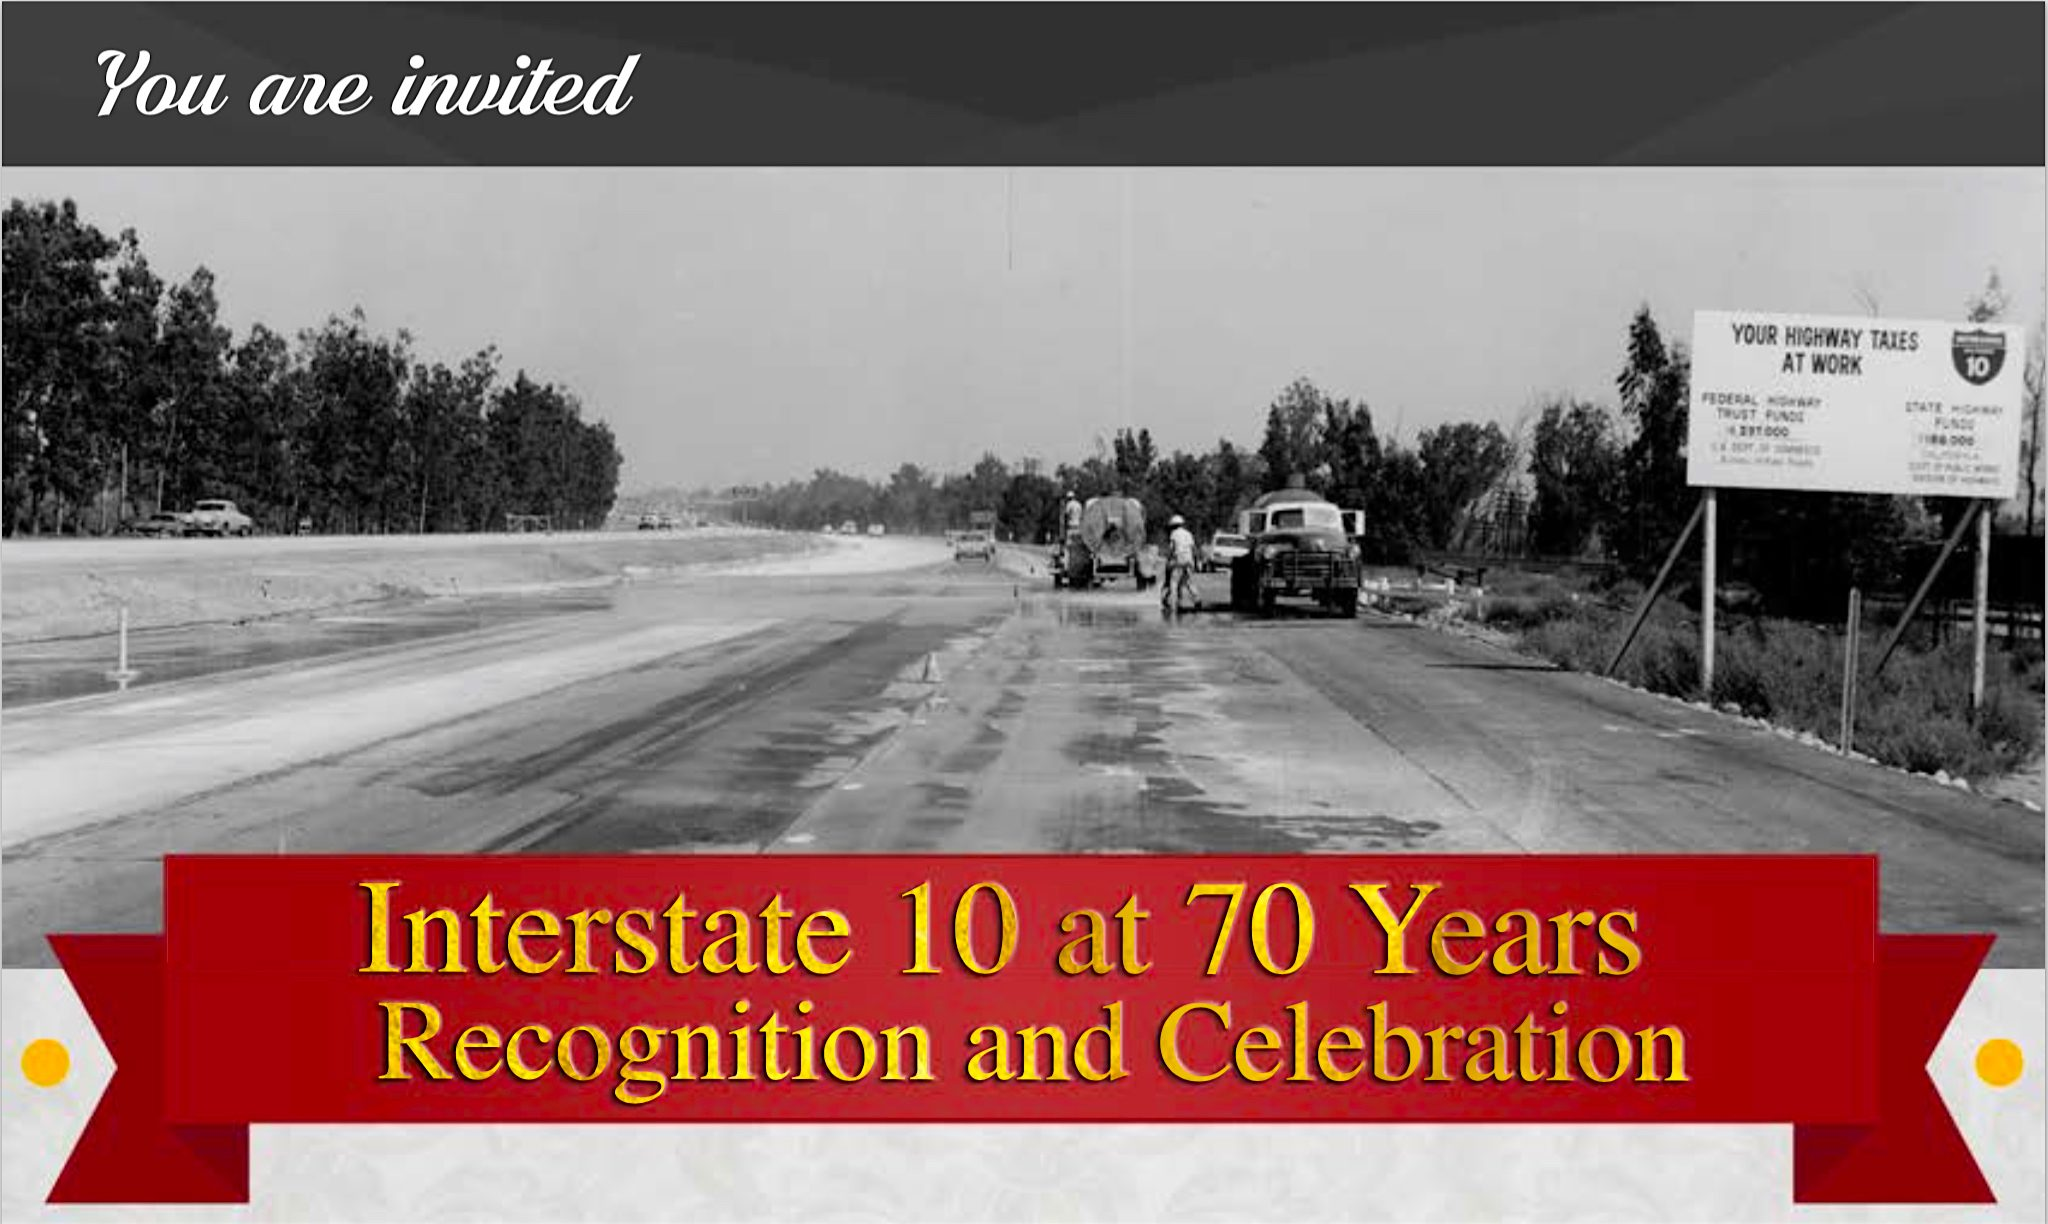 70th Anniversary Celebration of I-10 Highway Section, August 18 in Ontario, California, USA